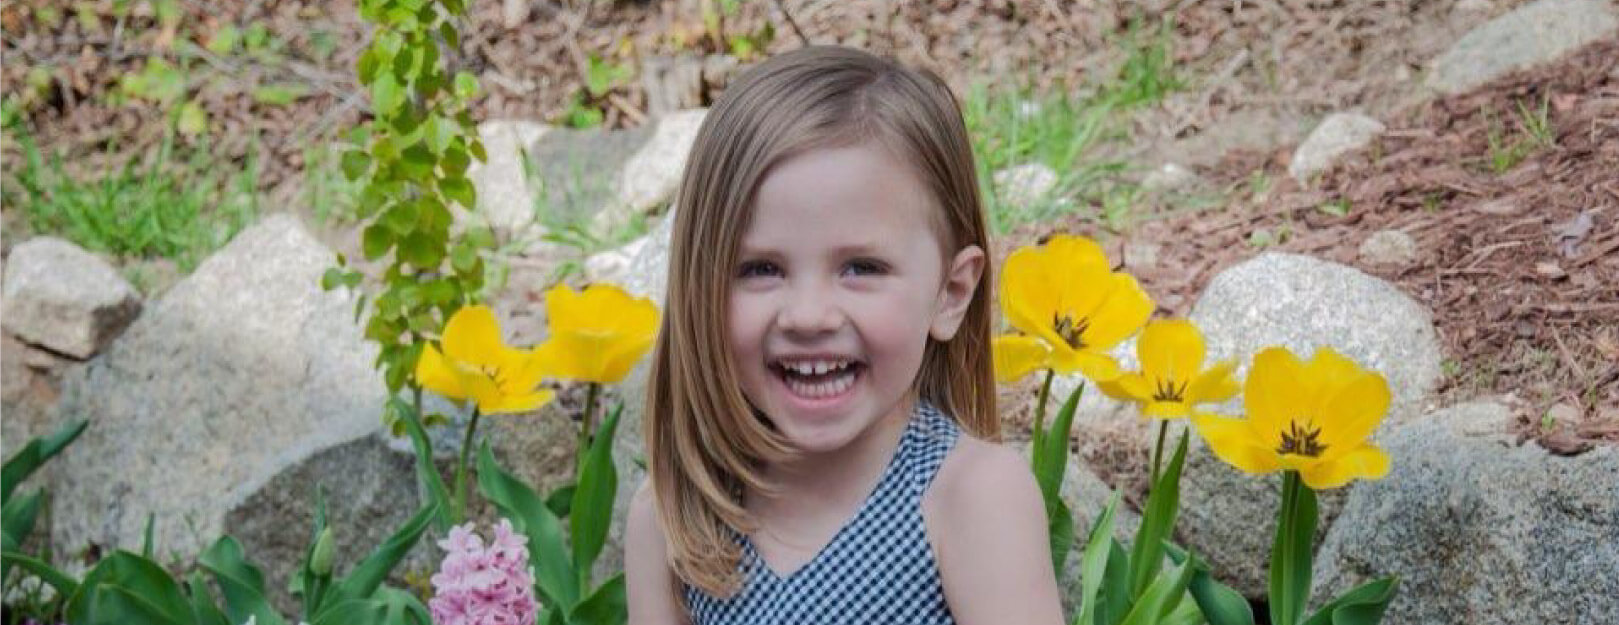 Picture of little girl smiling with flowers